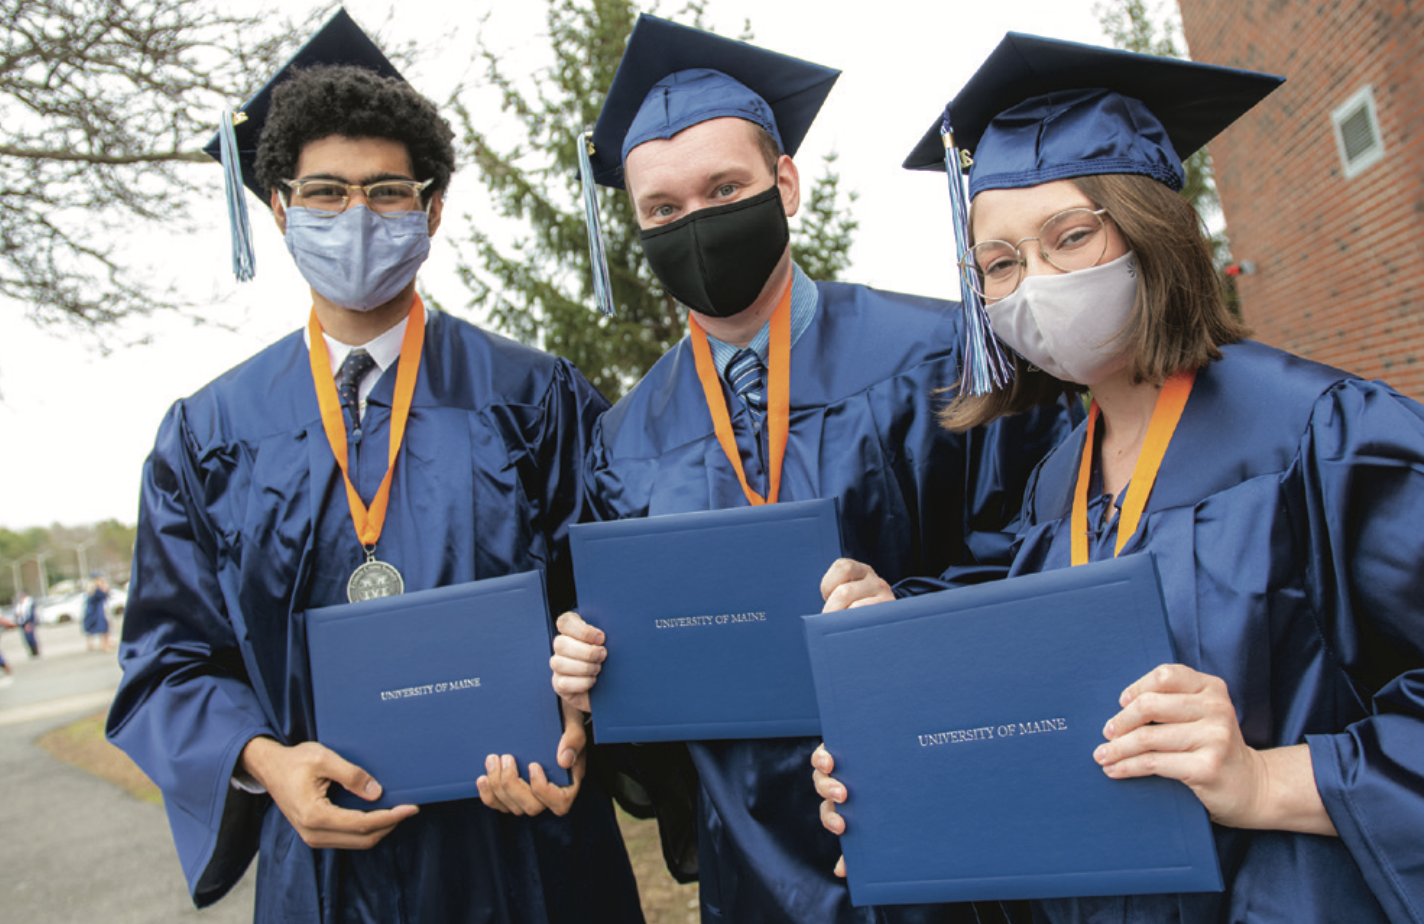 Three members of the graduating class holding up their University of Maine diplomas.